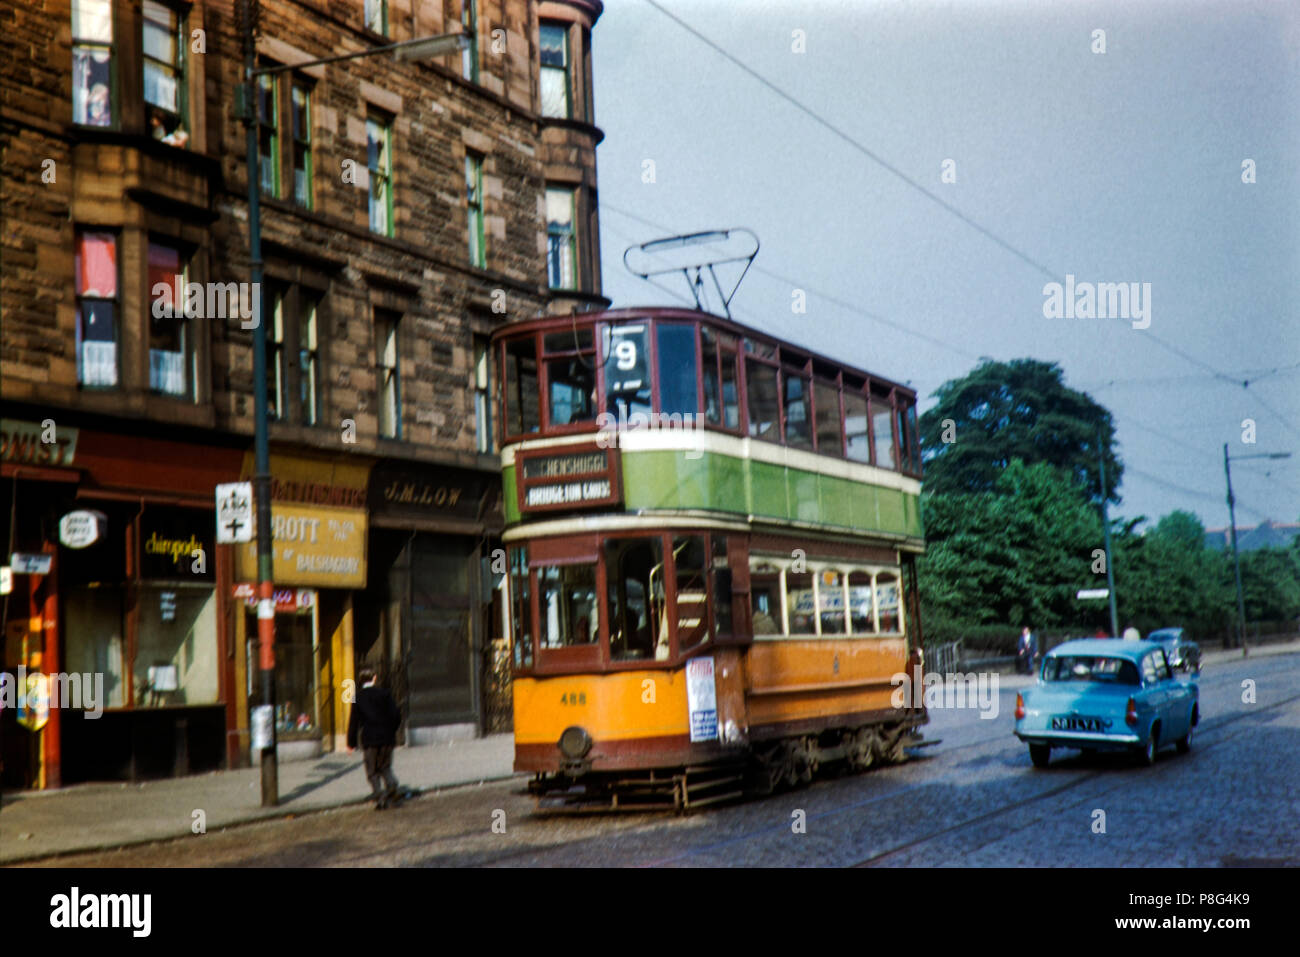 Glasgow Tram No 488 near Partick on route 9 Image taken on 22/05/1961 - Stock Image